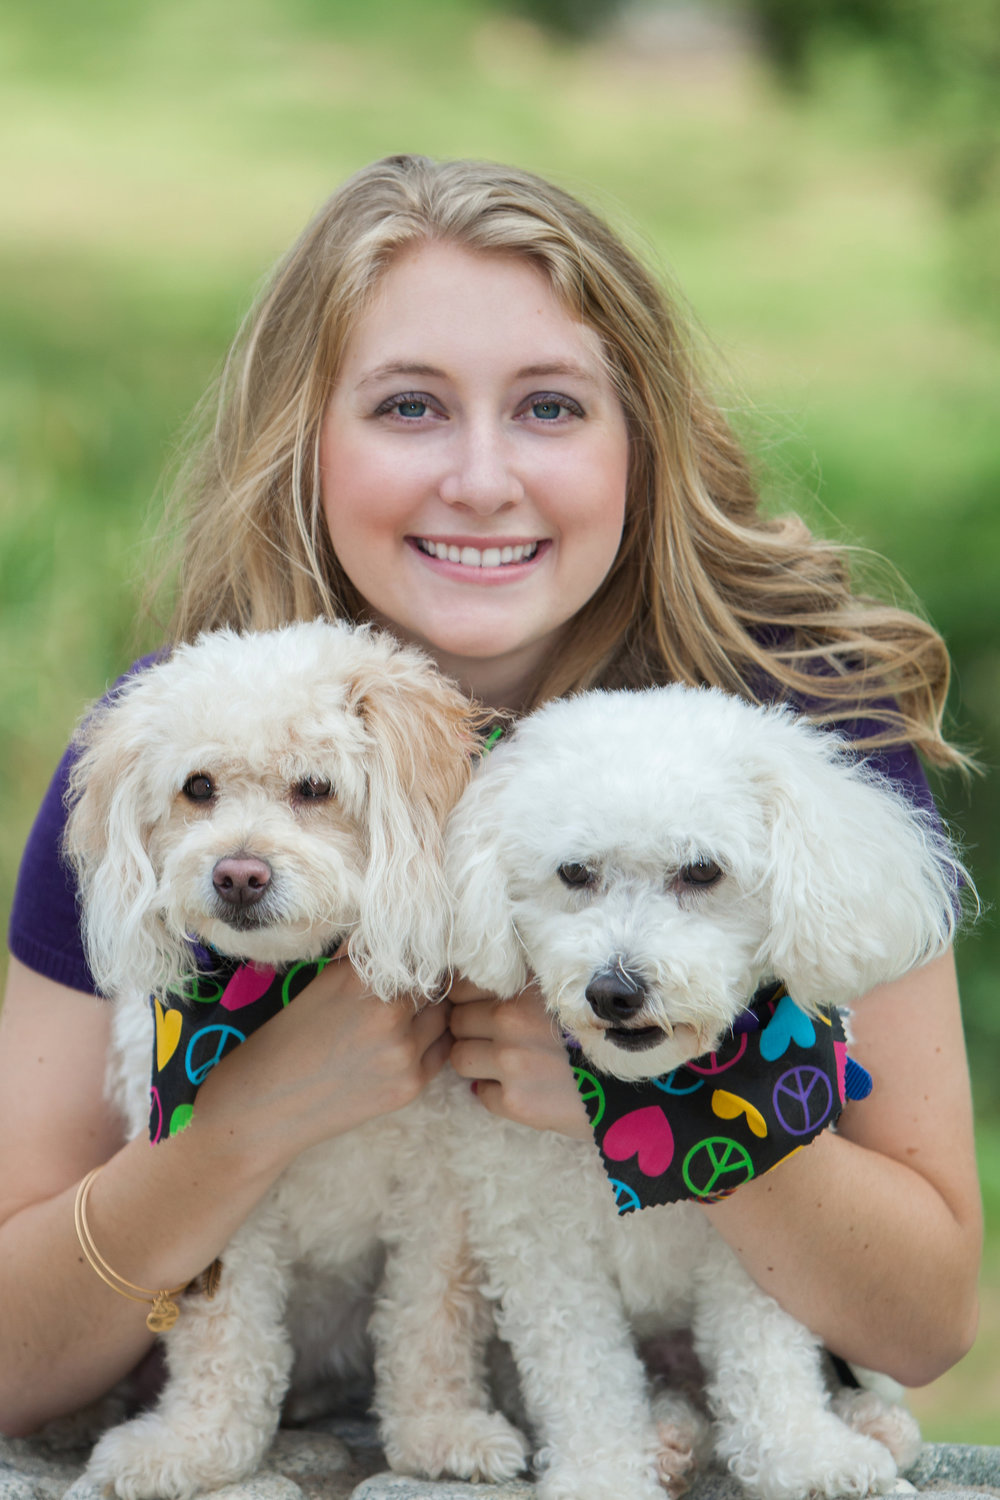 High school senior girl with her dogs